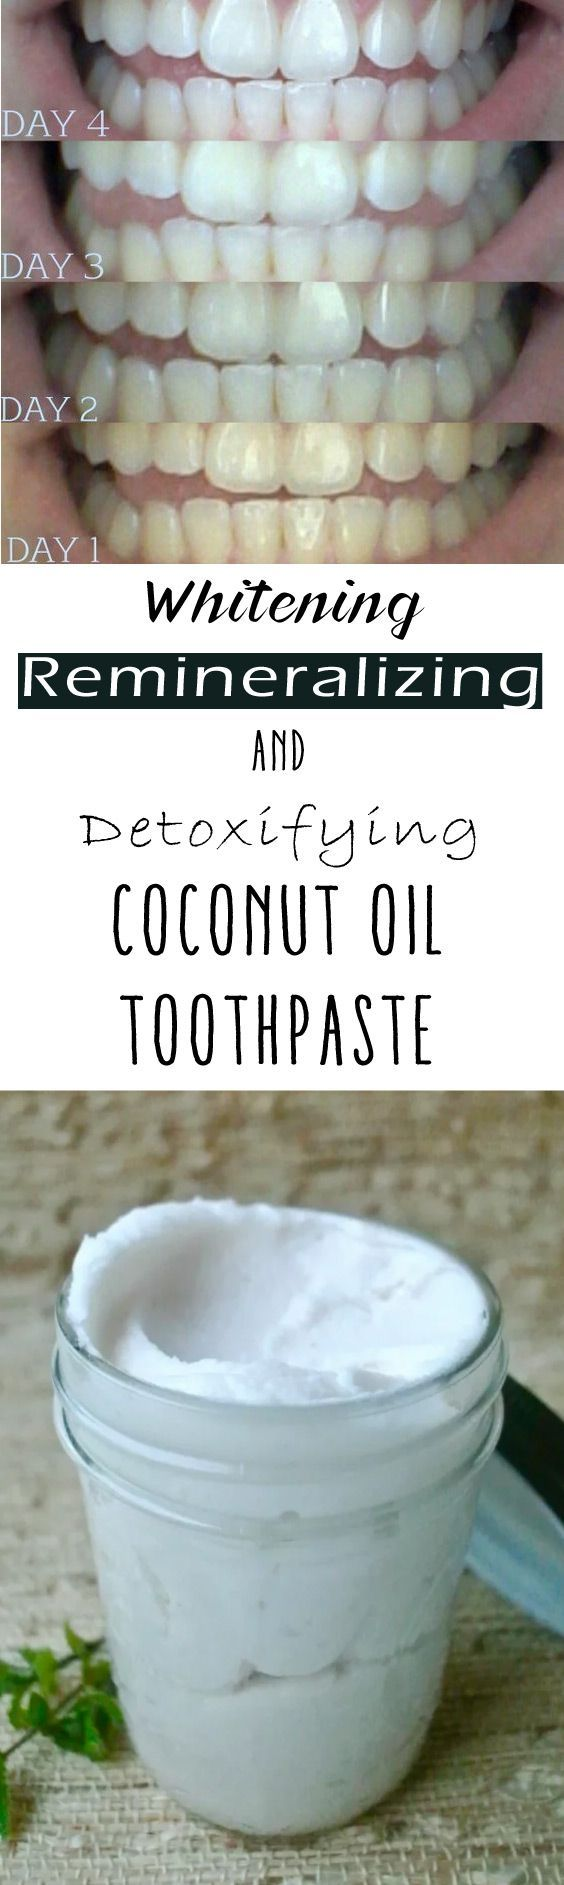 DIY Whitening, Remineralizing And Detoxifying Coconut Oil Toothpaste